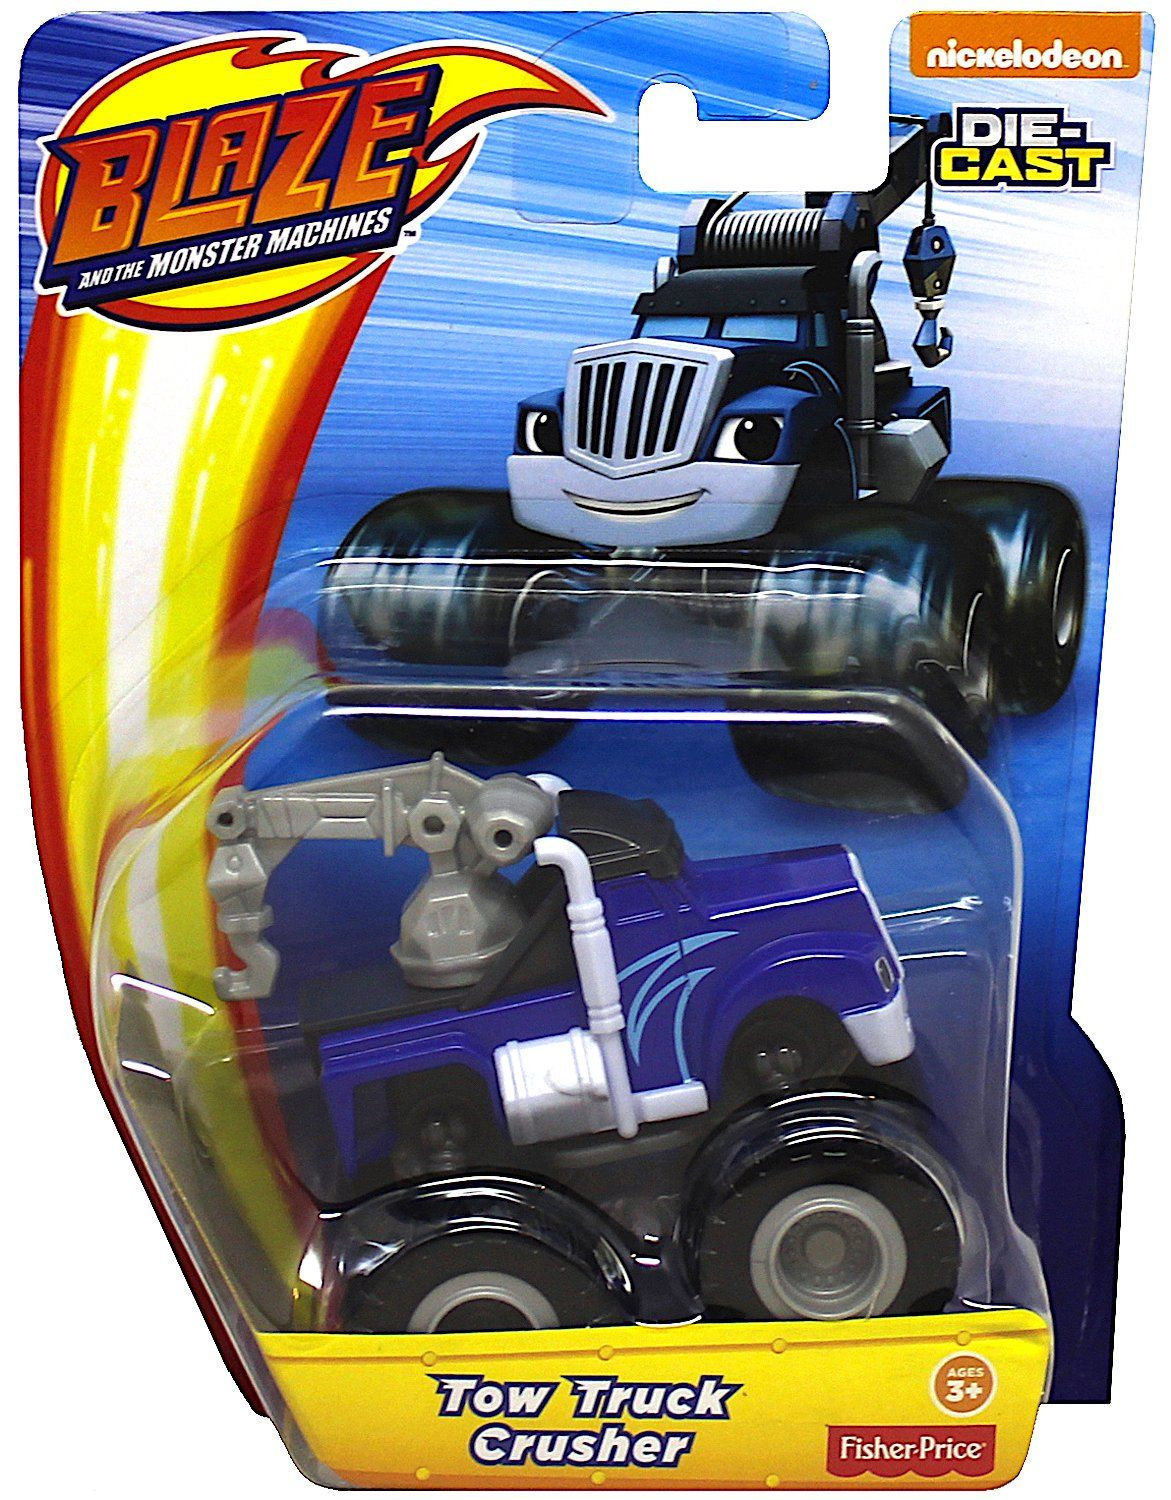 Nickelodeon Die Cast Blaze And The Monster Machines Tow Truck